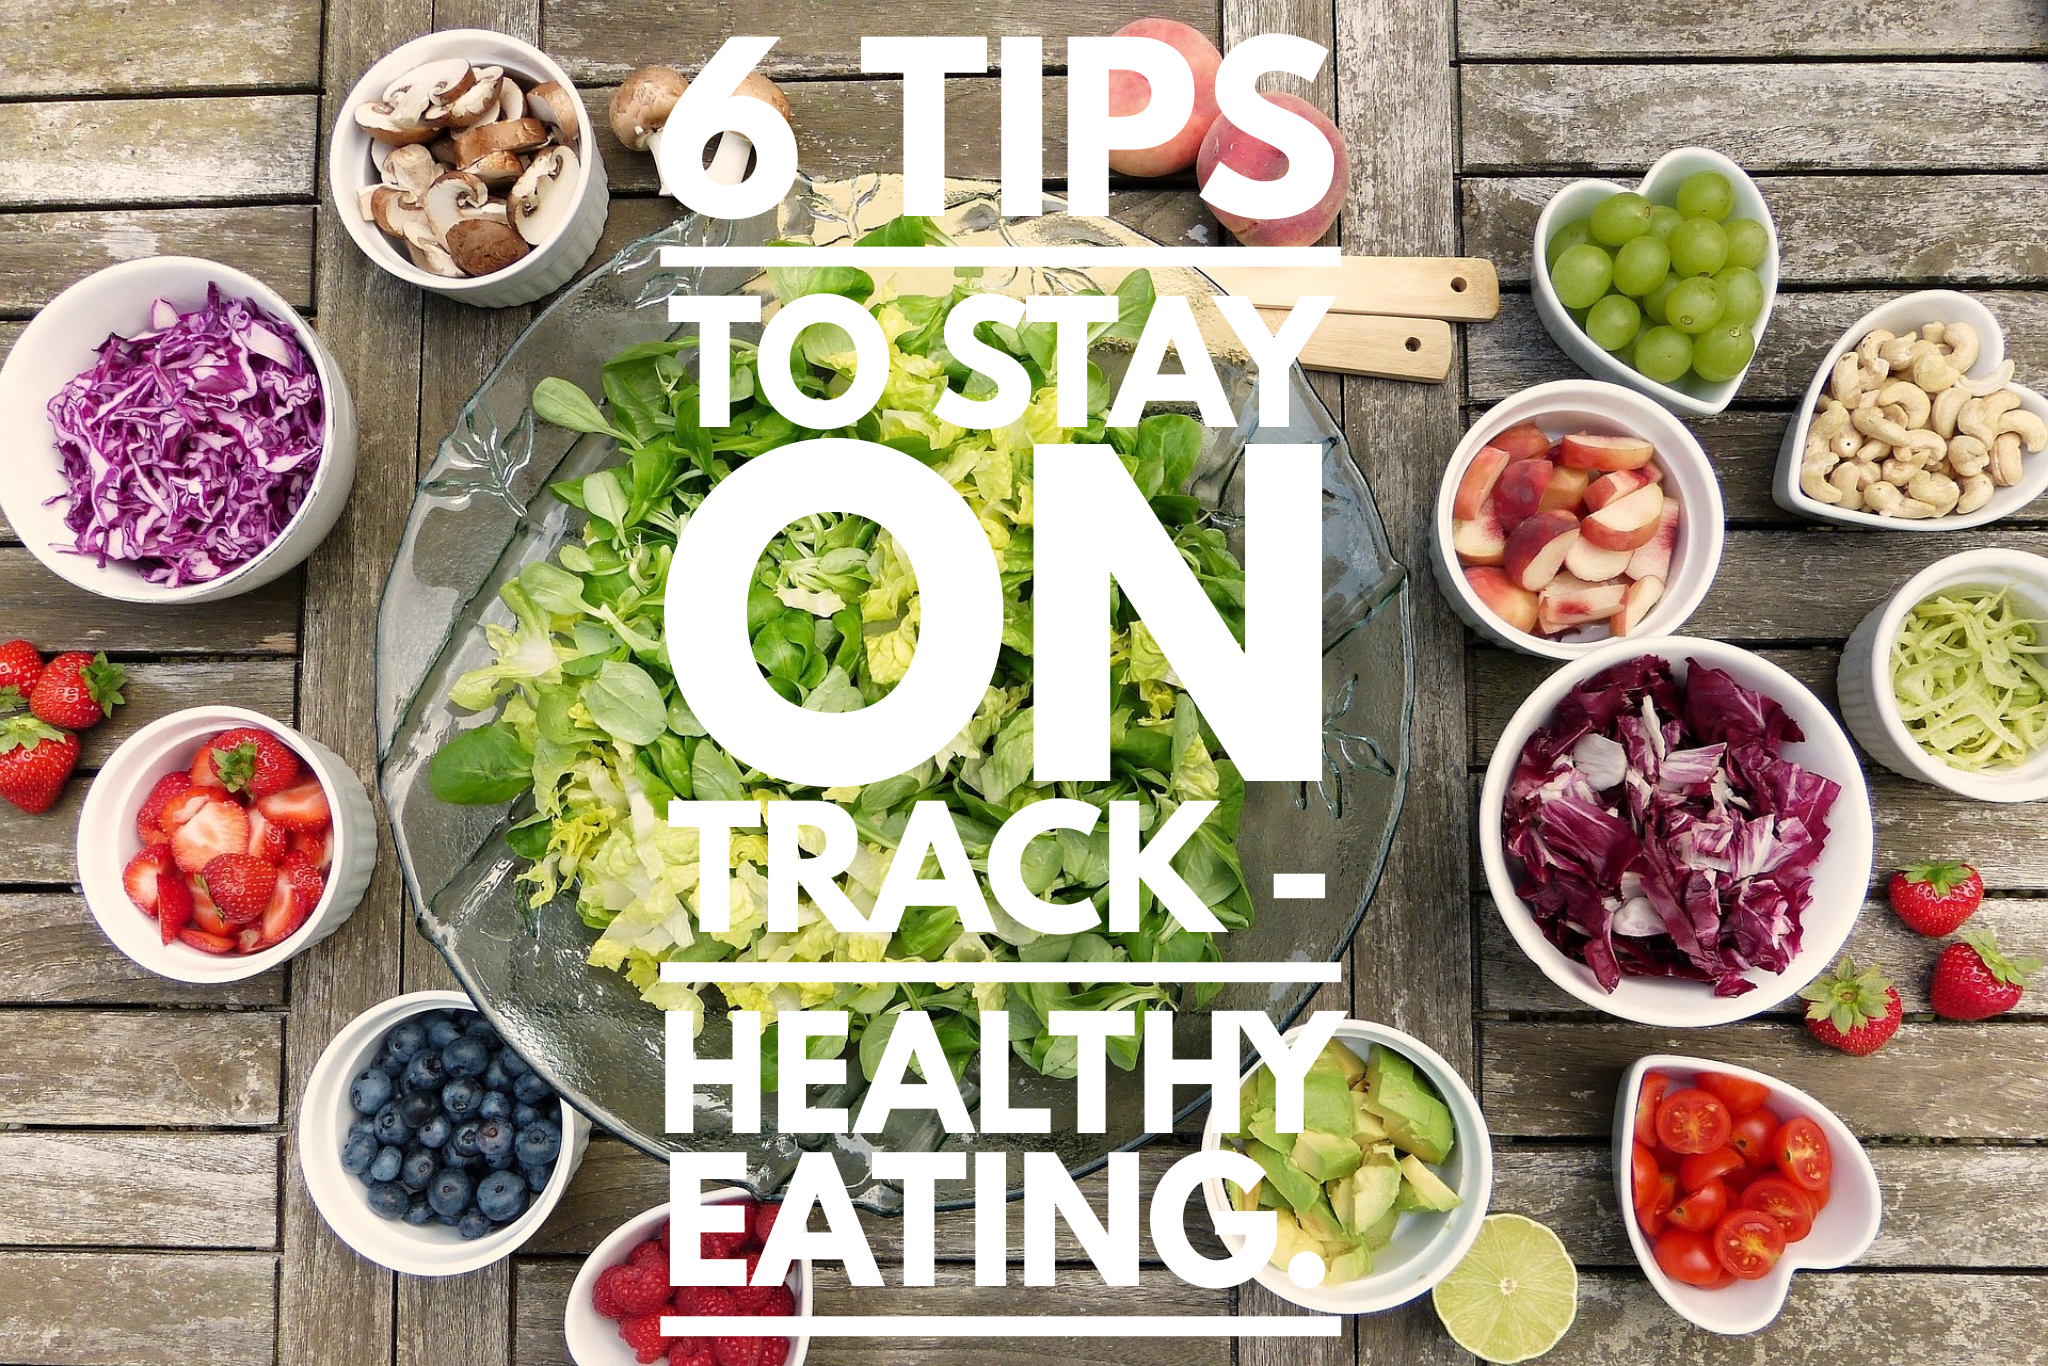 Healthy Eating - 6 tips to stay on track